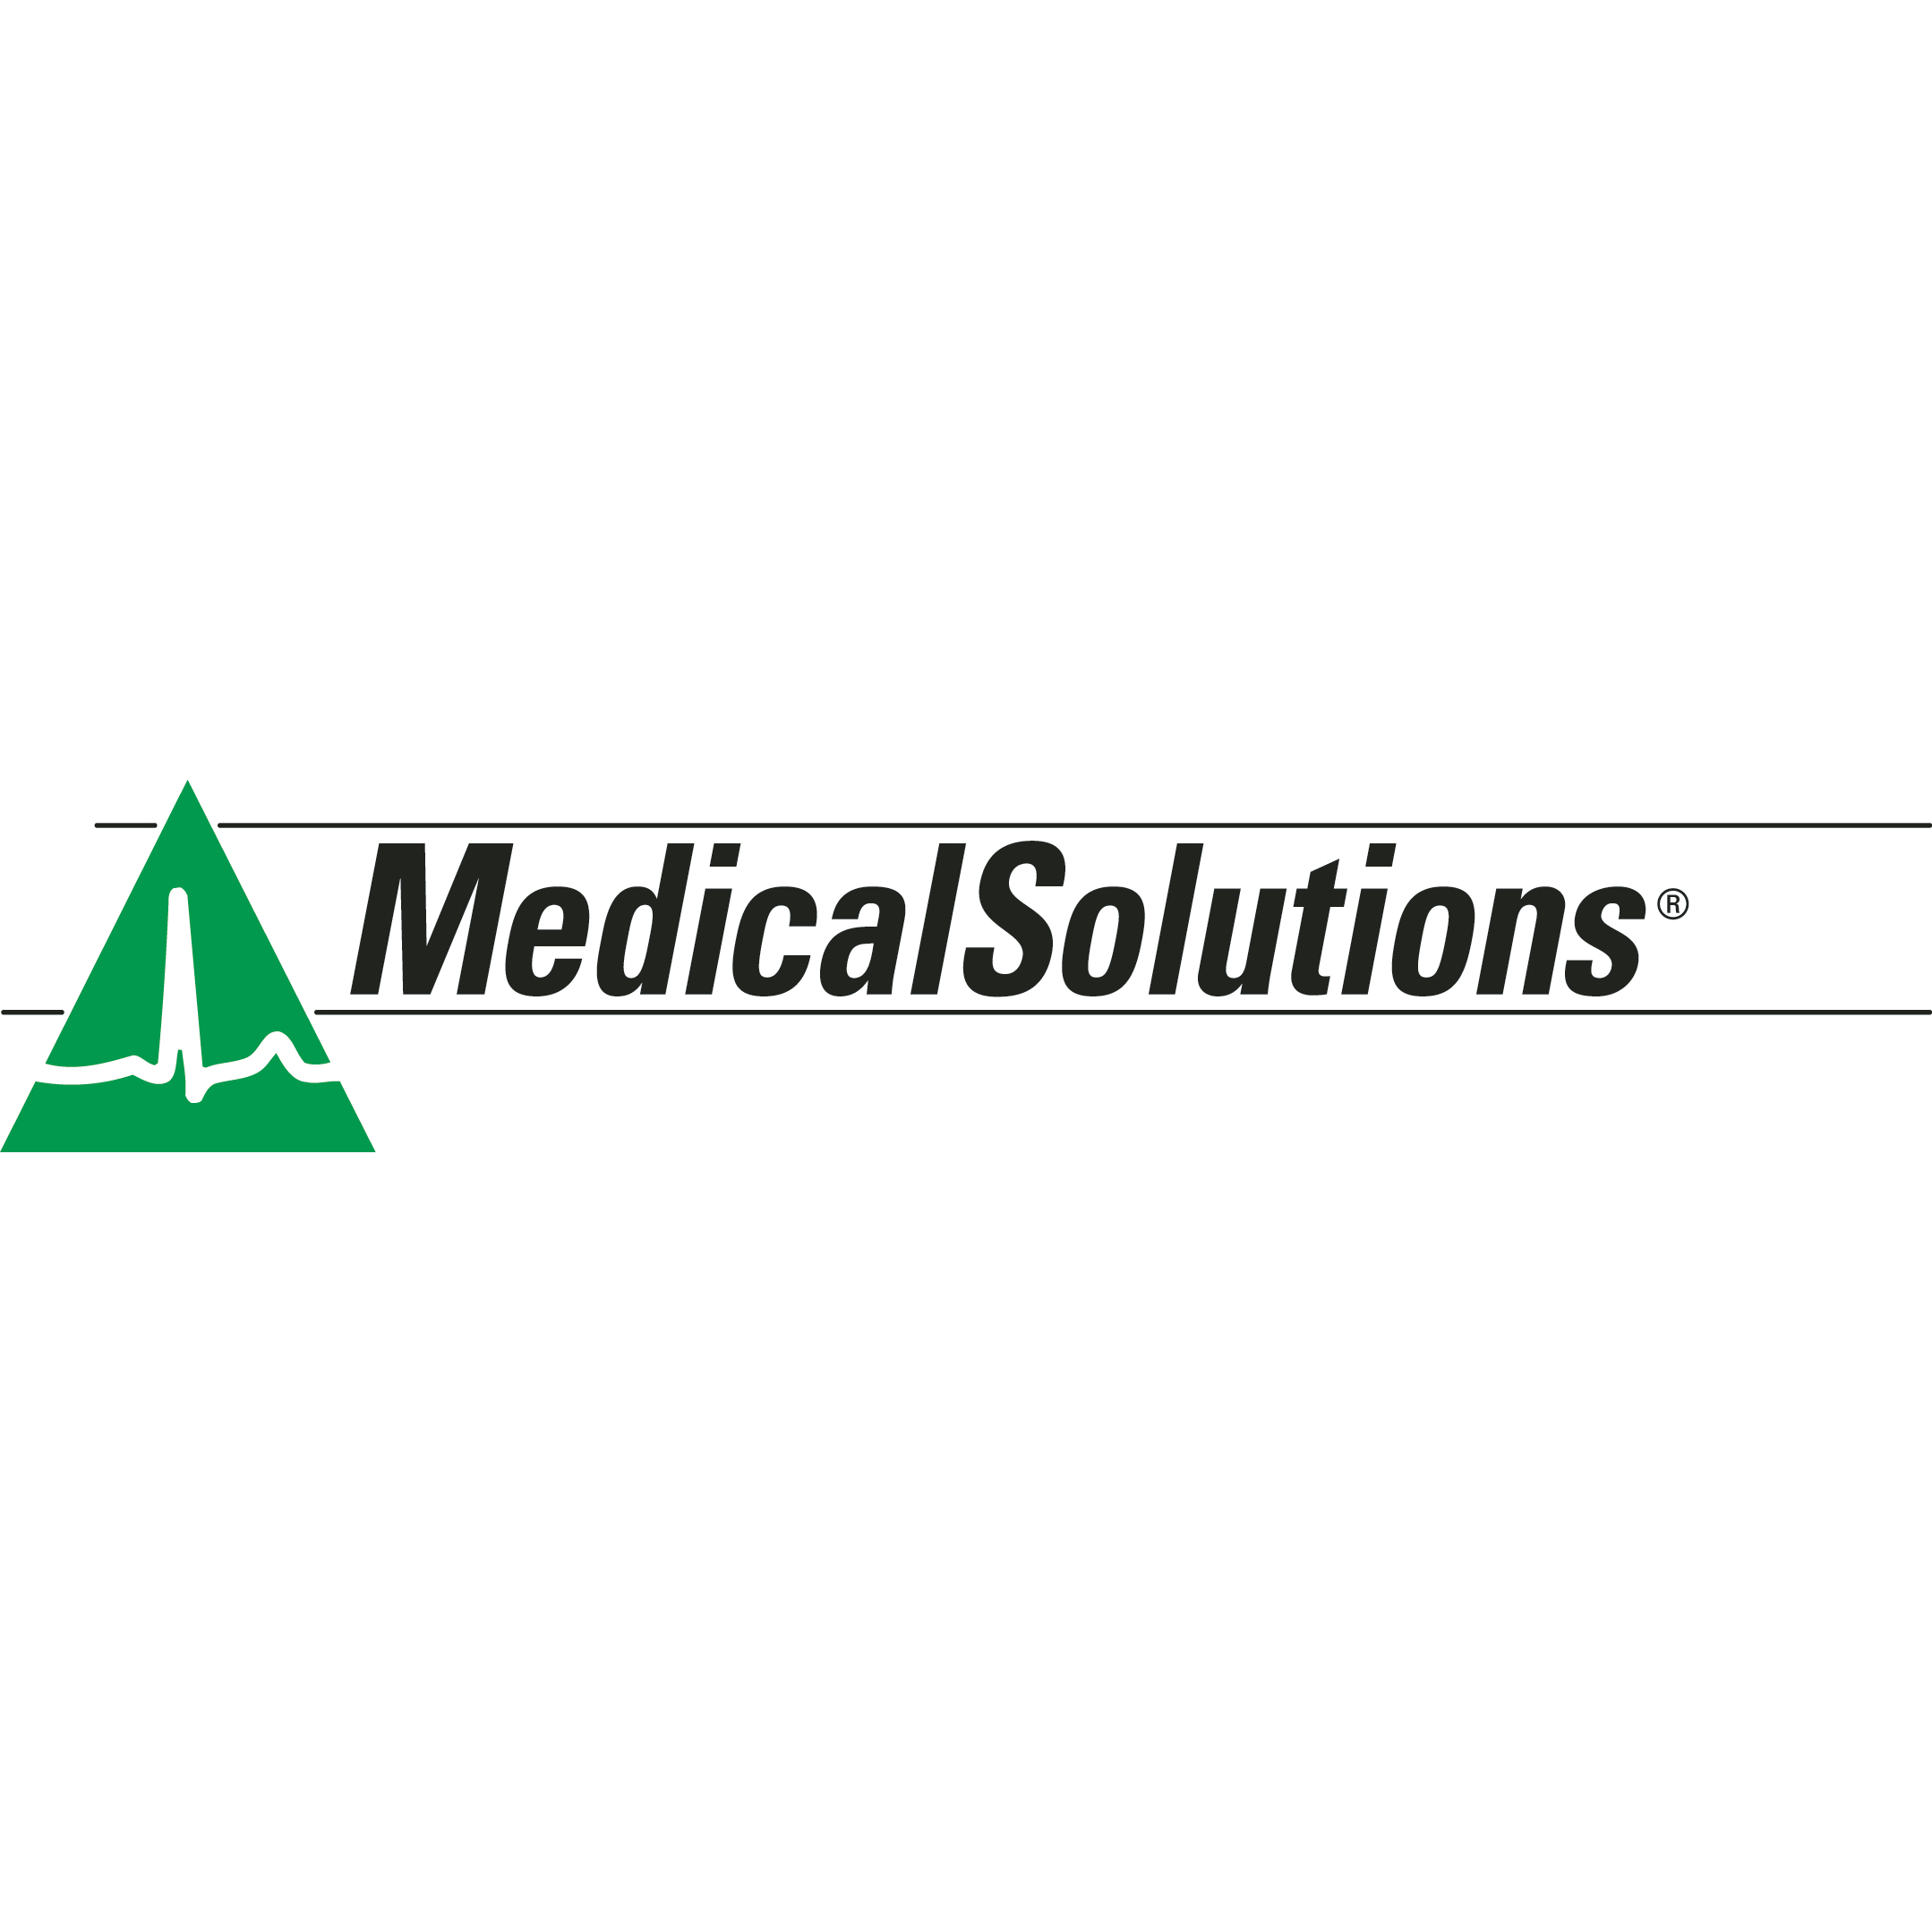 Employment Agency in KY Louisville 40207 MedicalSolutions 106 Executive Park  (502)459-0252